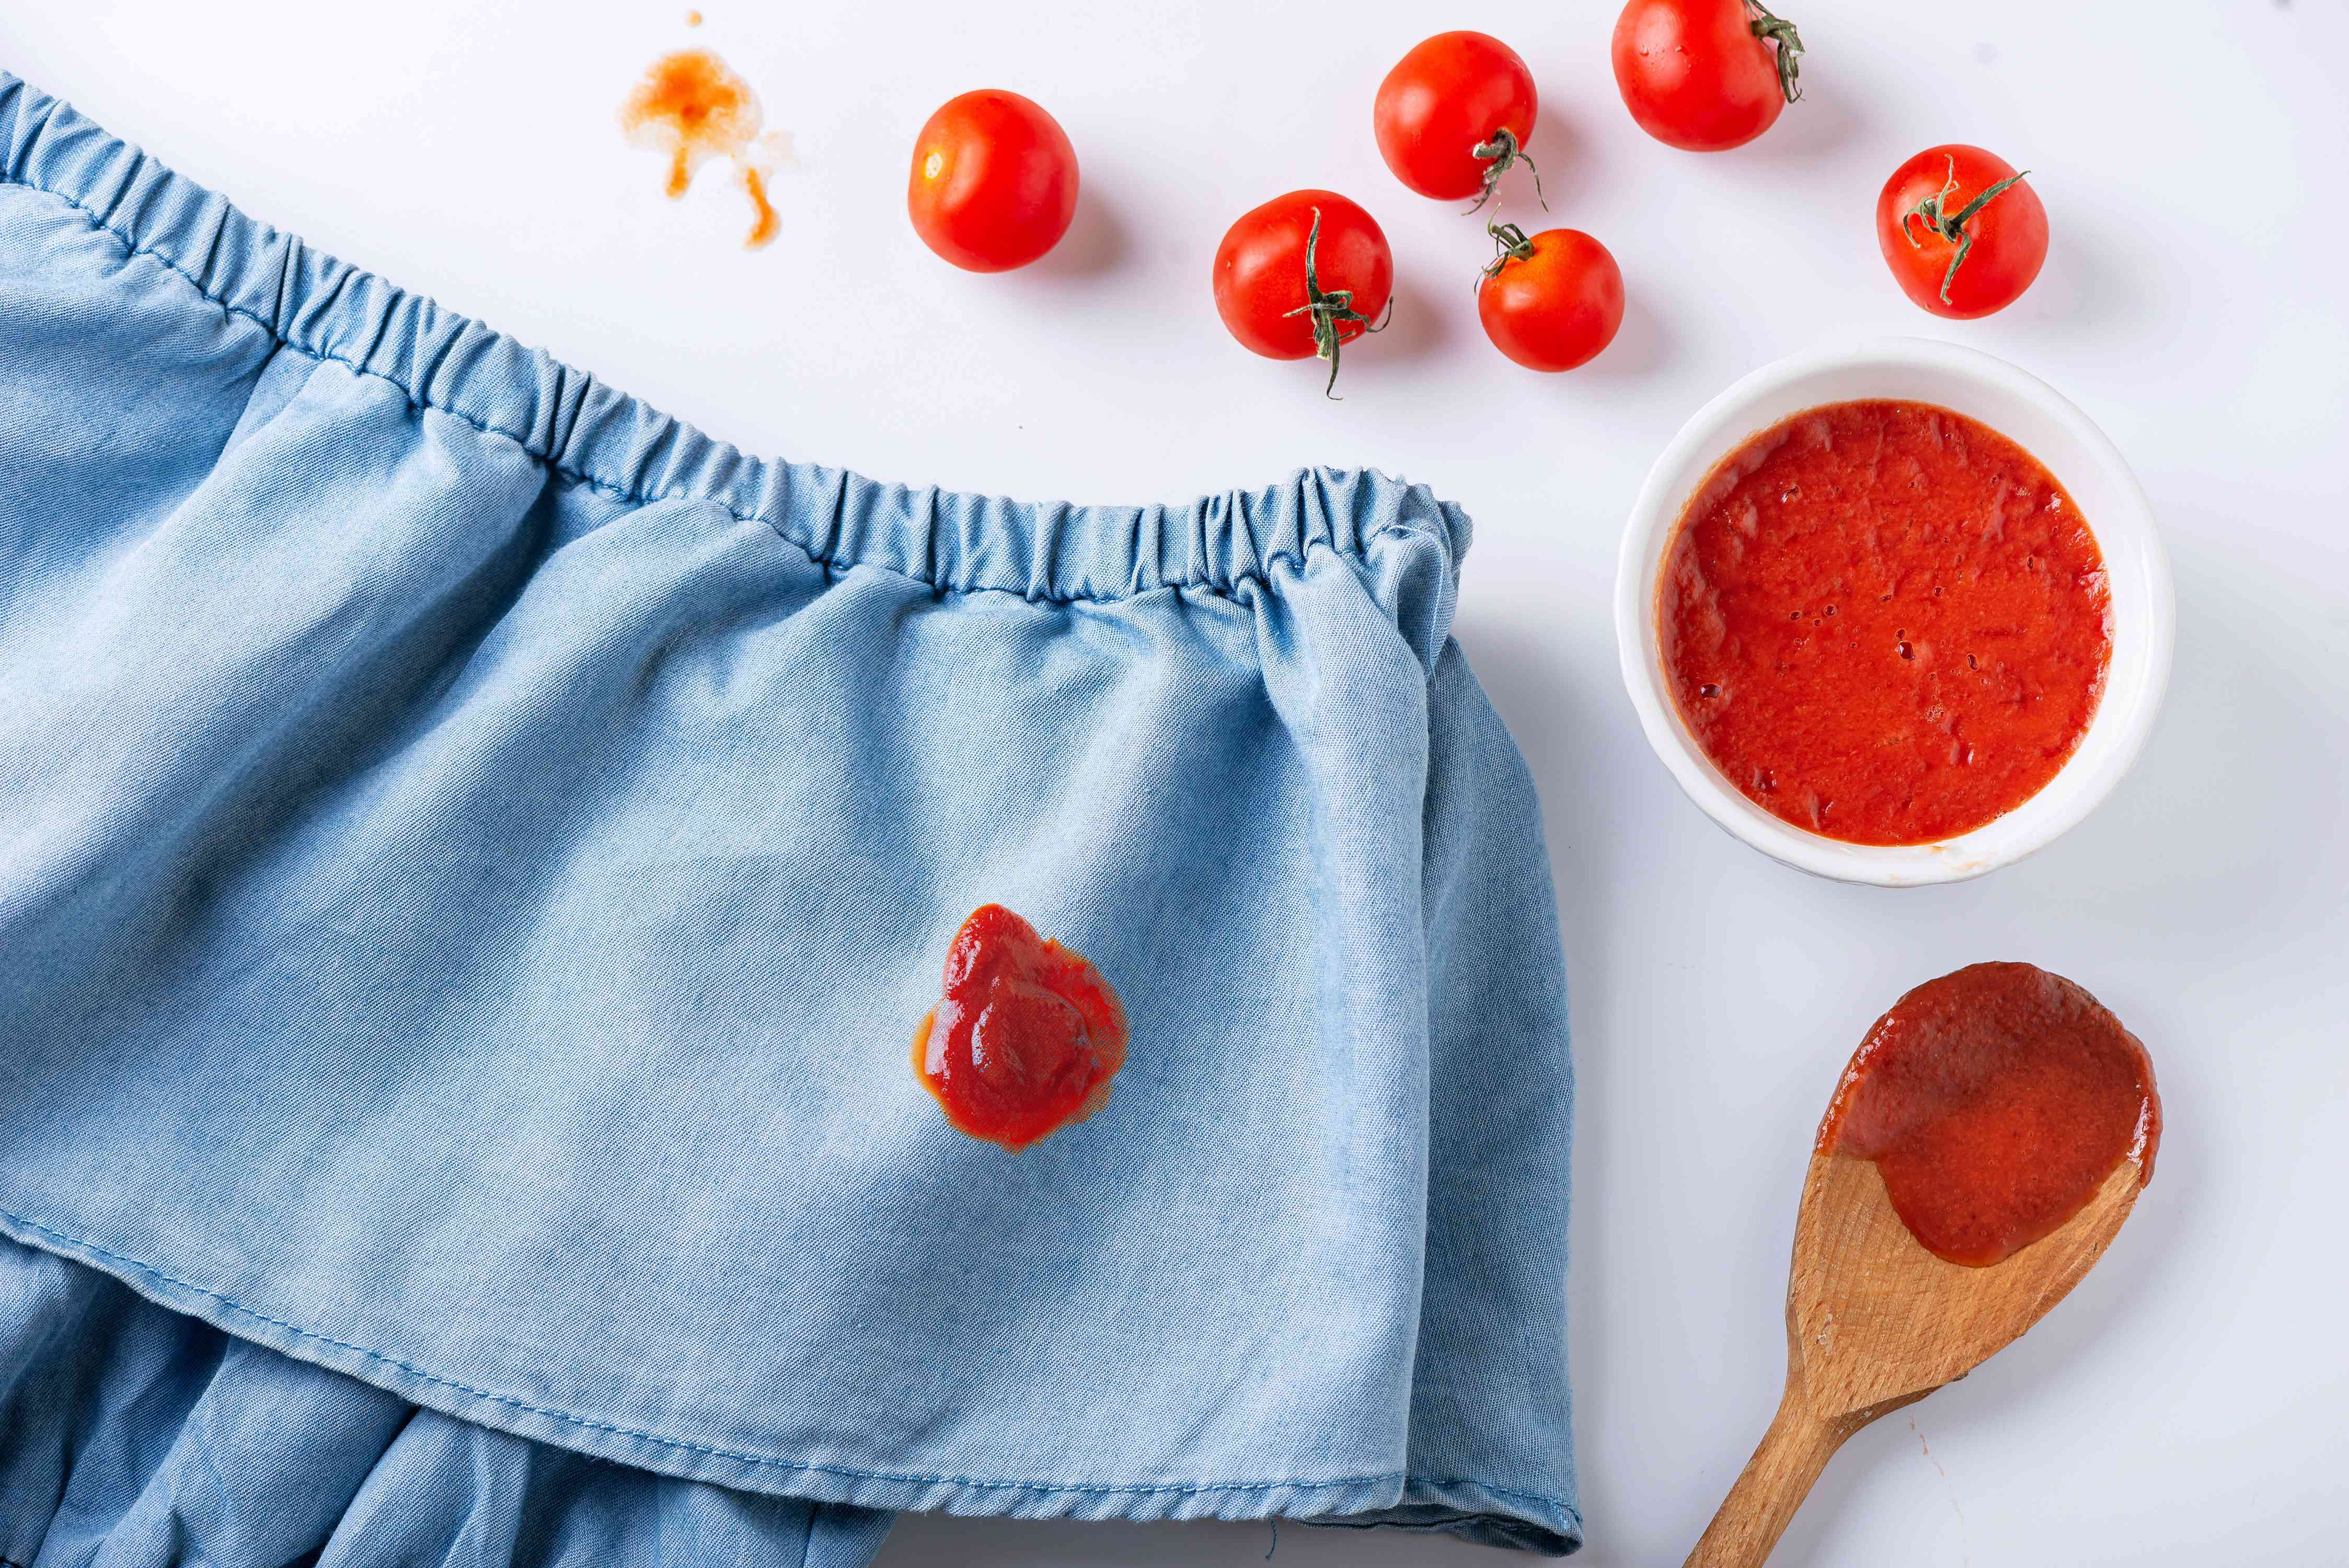 tomato sauce stain on a blouse